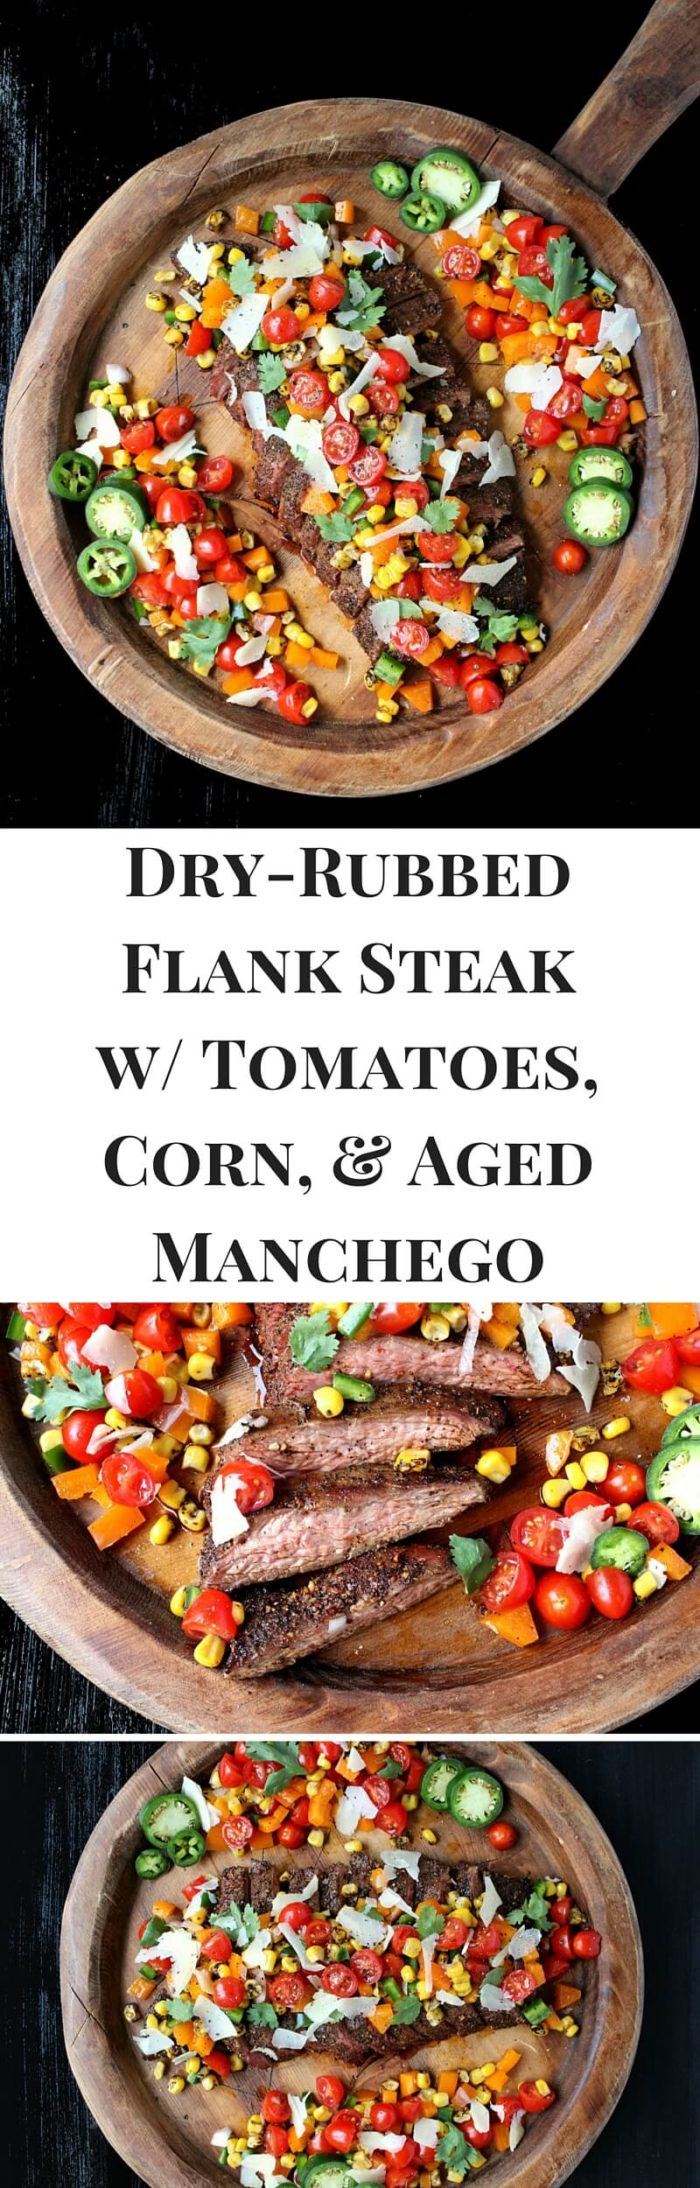 Dry-Rubbed Flank Steak w/ Tomatoes, Corn, & Aged Manchego